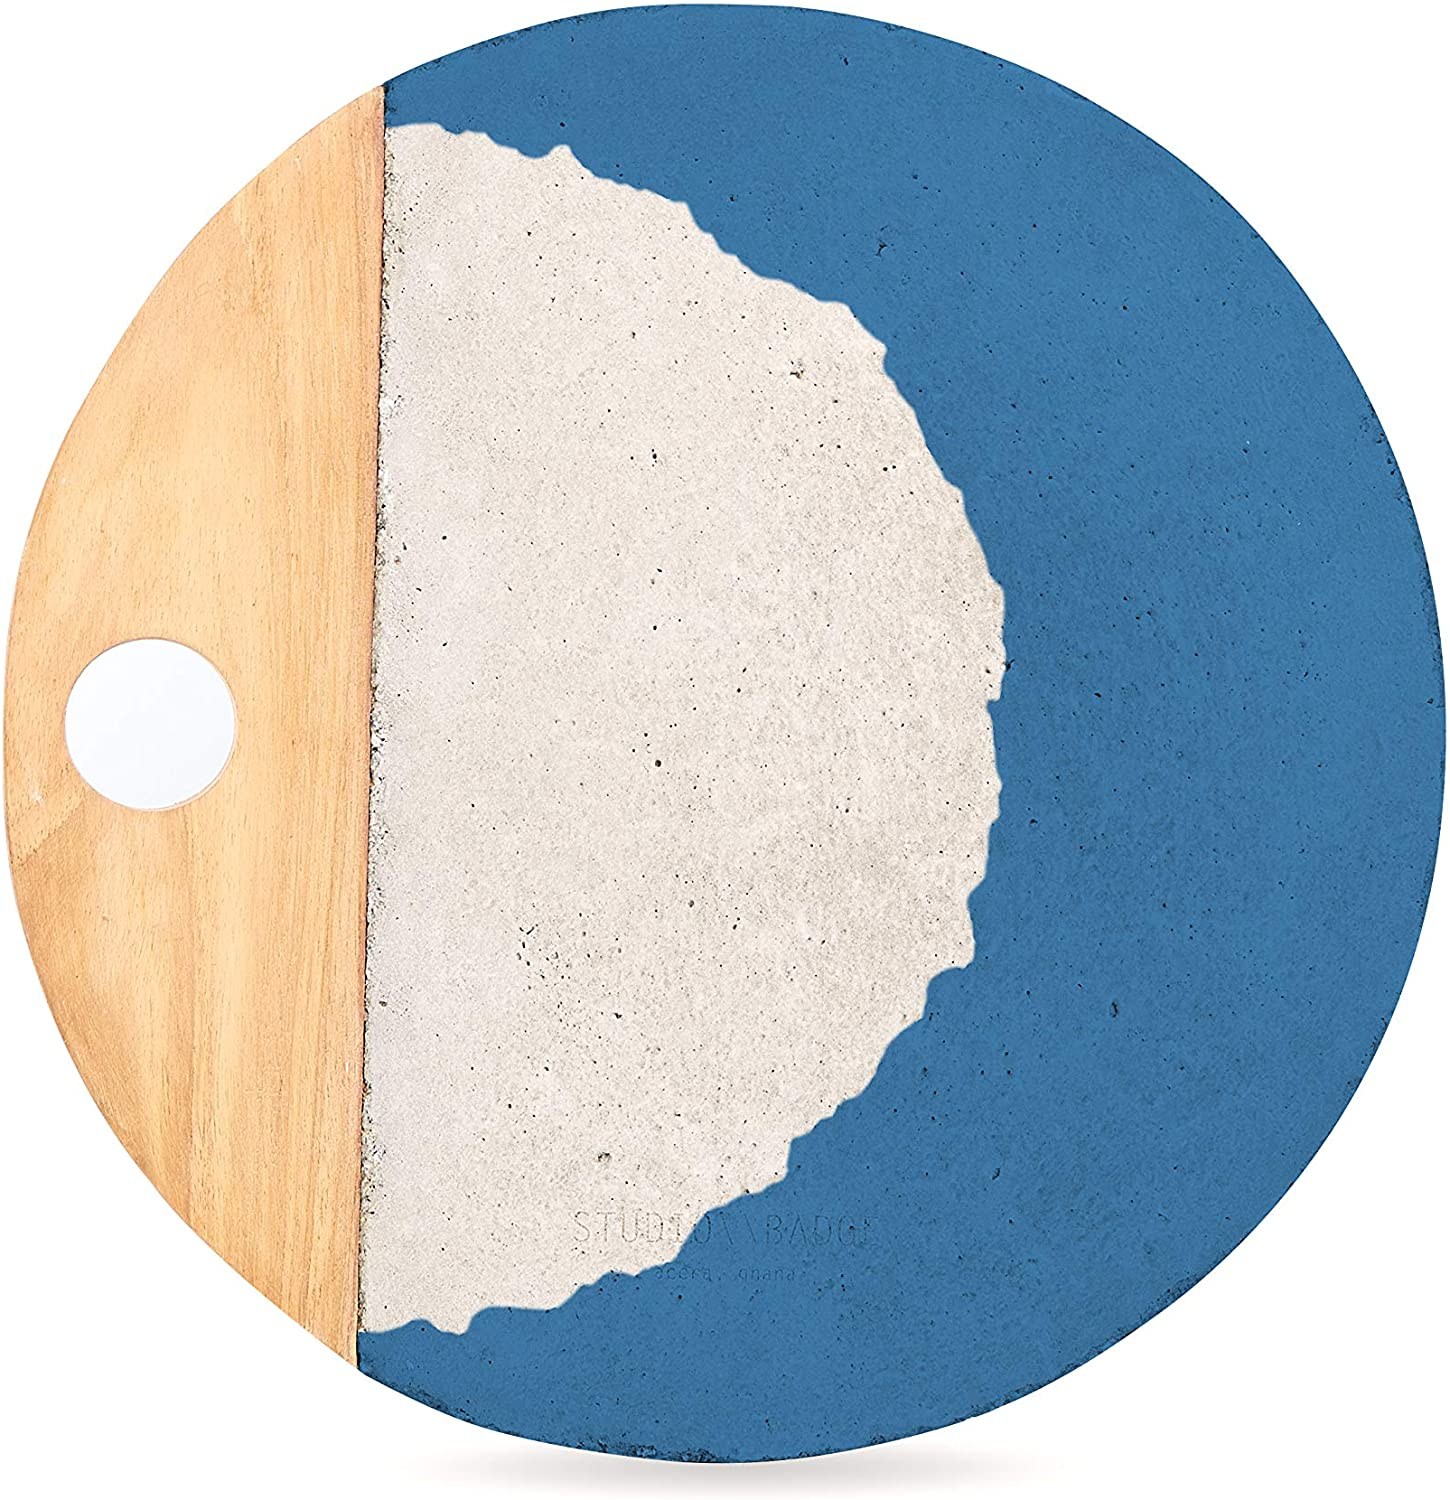 Blue, concrete, and wood circular serving platter